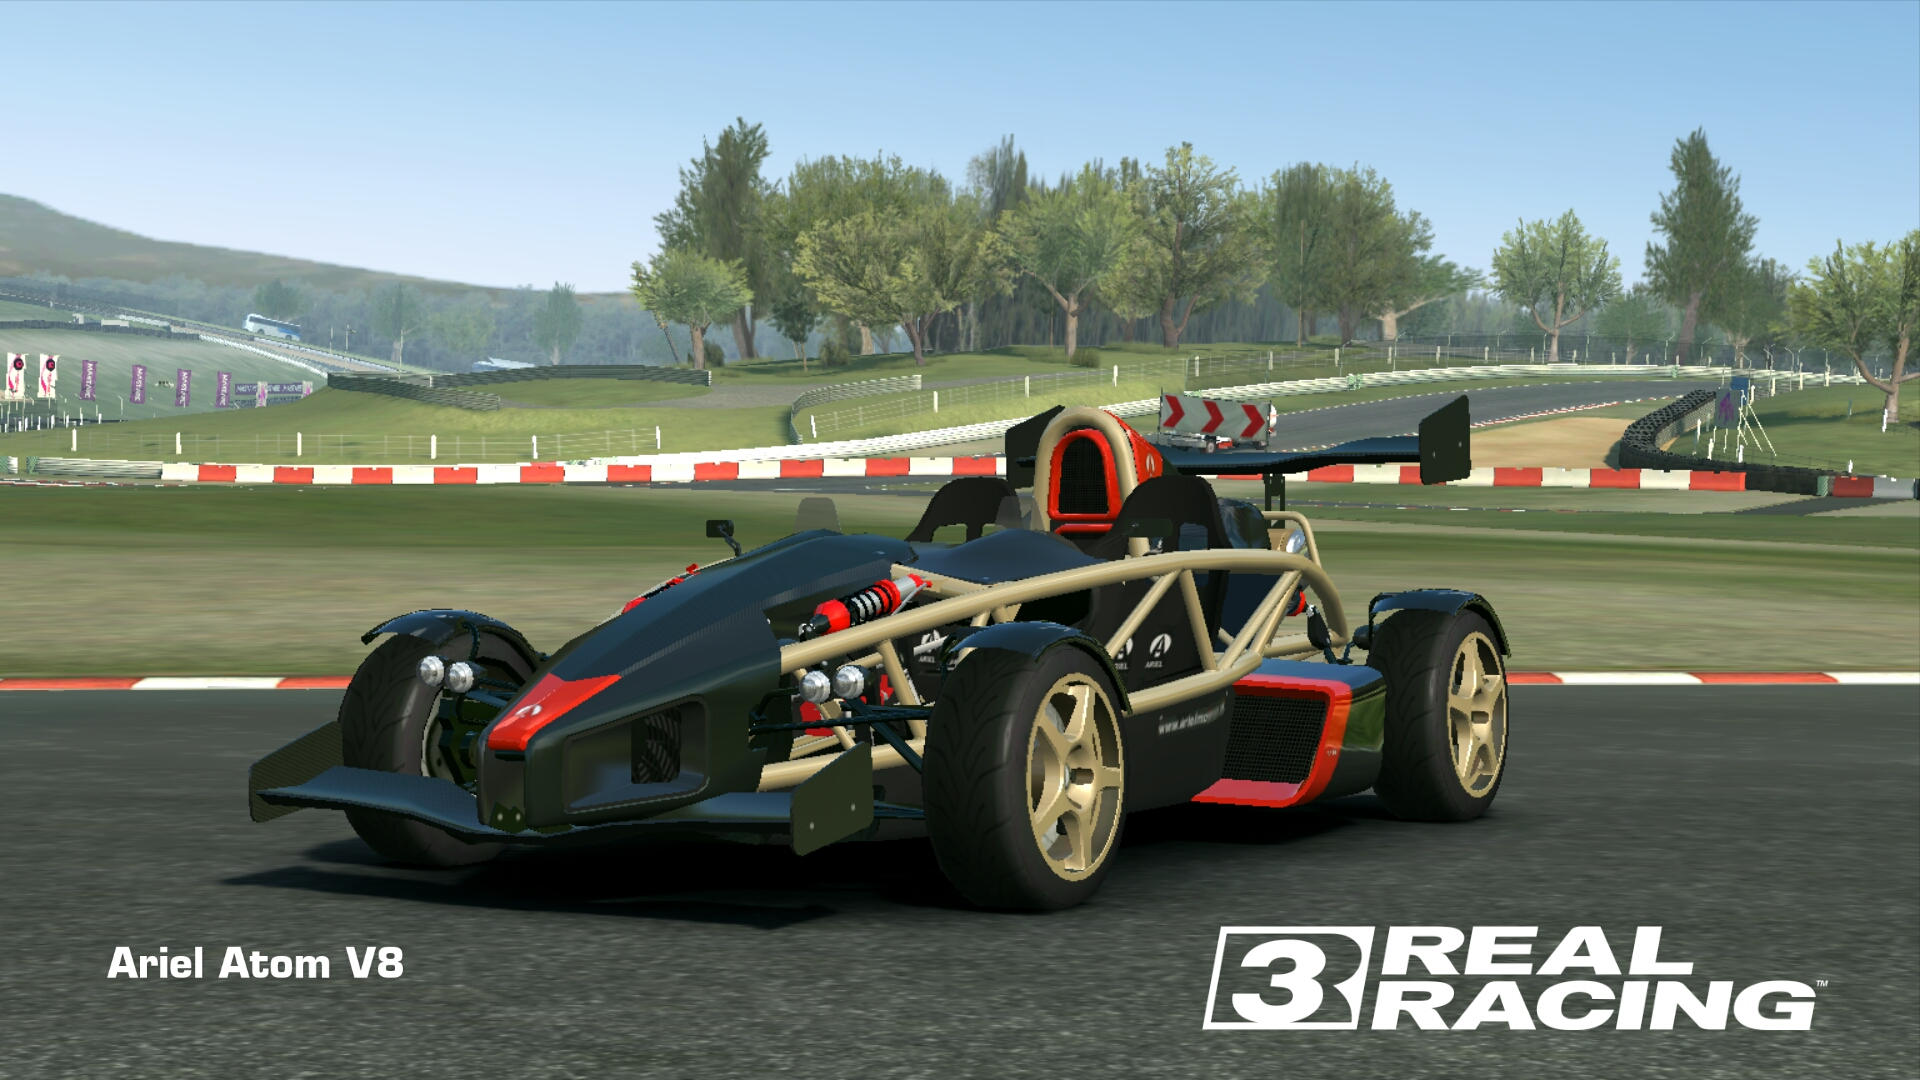 Ariel Atom V8 | Real Racing 3 Wiki | FANDOM powered by Wikia